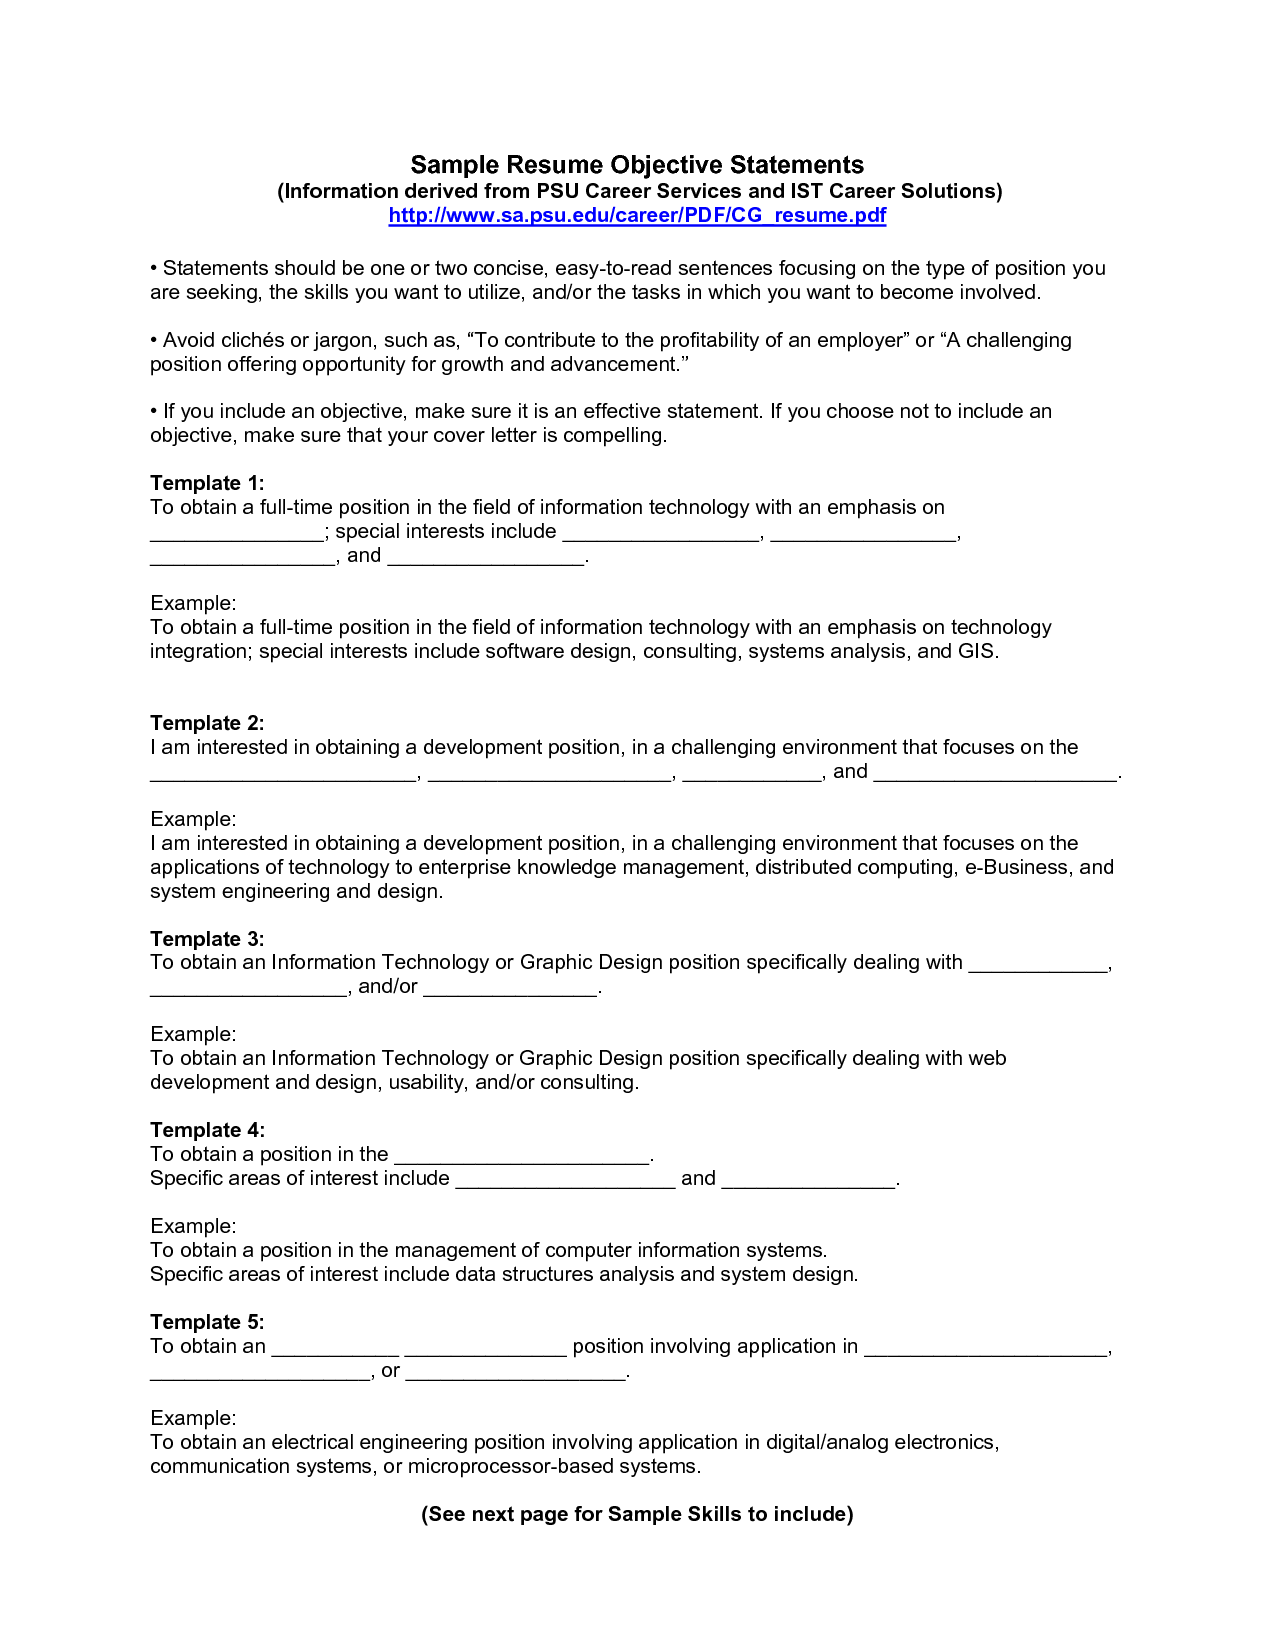 Cdl Resume Objective Examples 10 Sample Resume Objective Statements